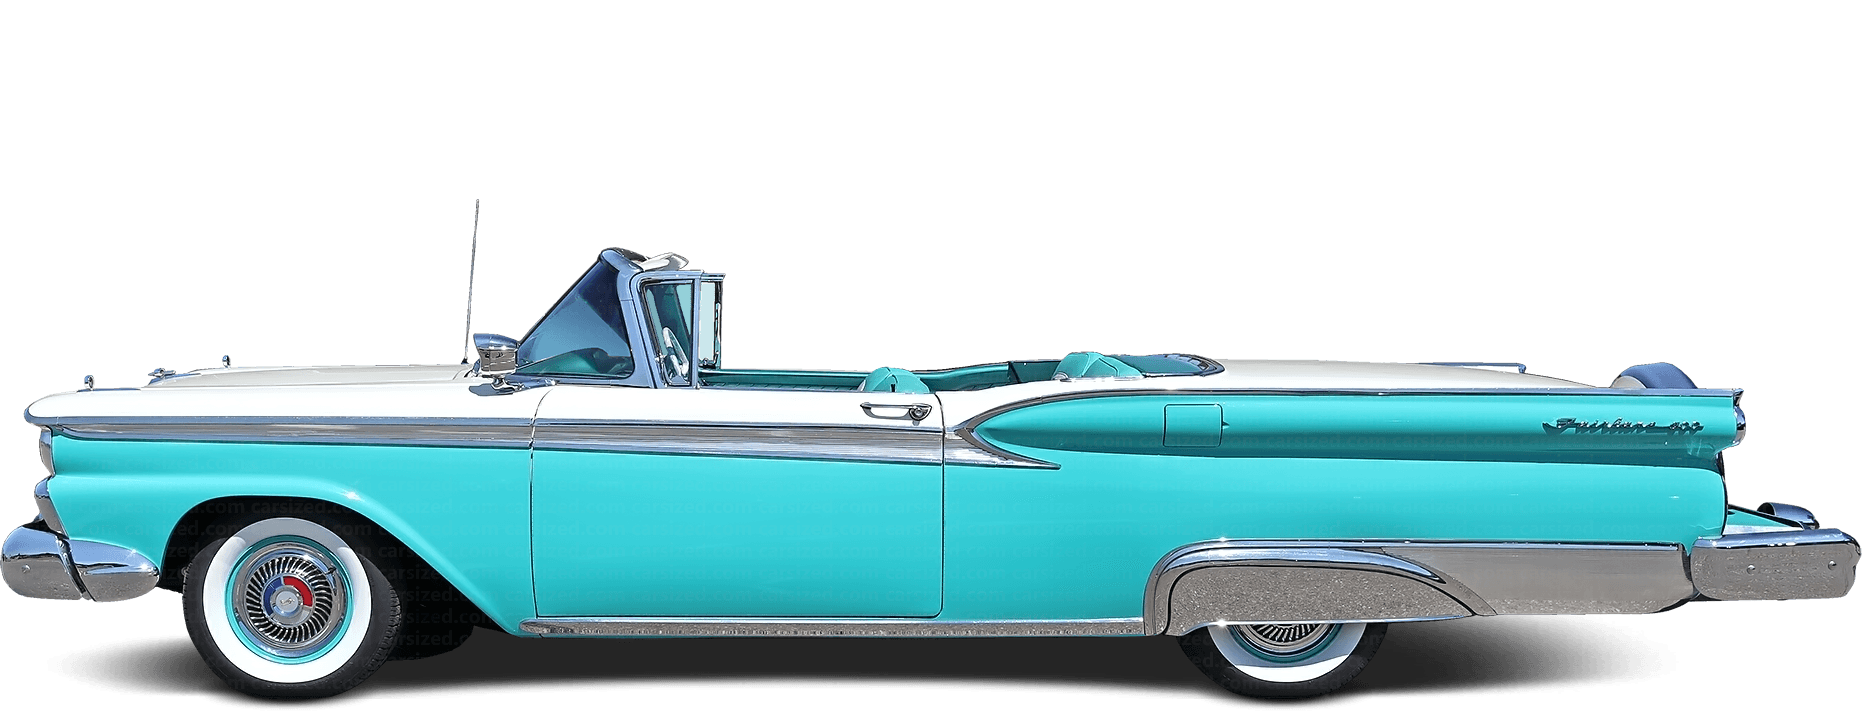 Ford Fairlane 500 Skyliner Cabriolet 1957-1959